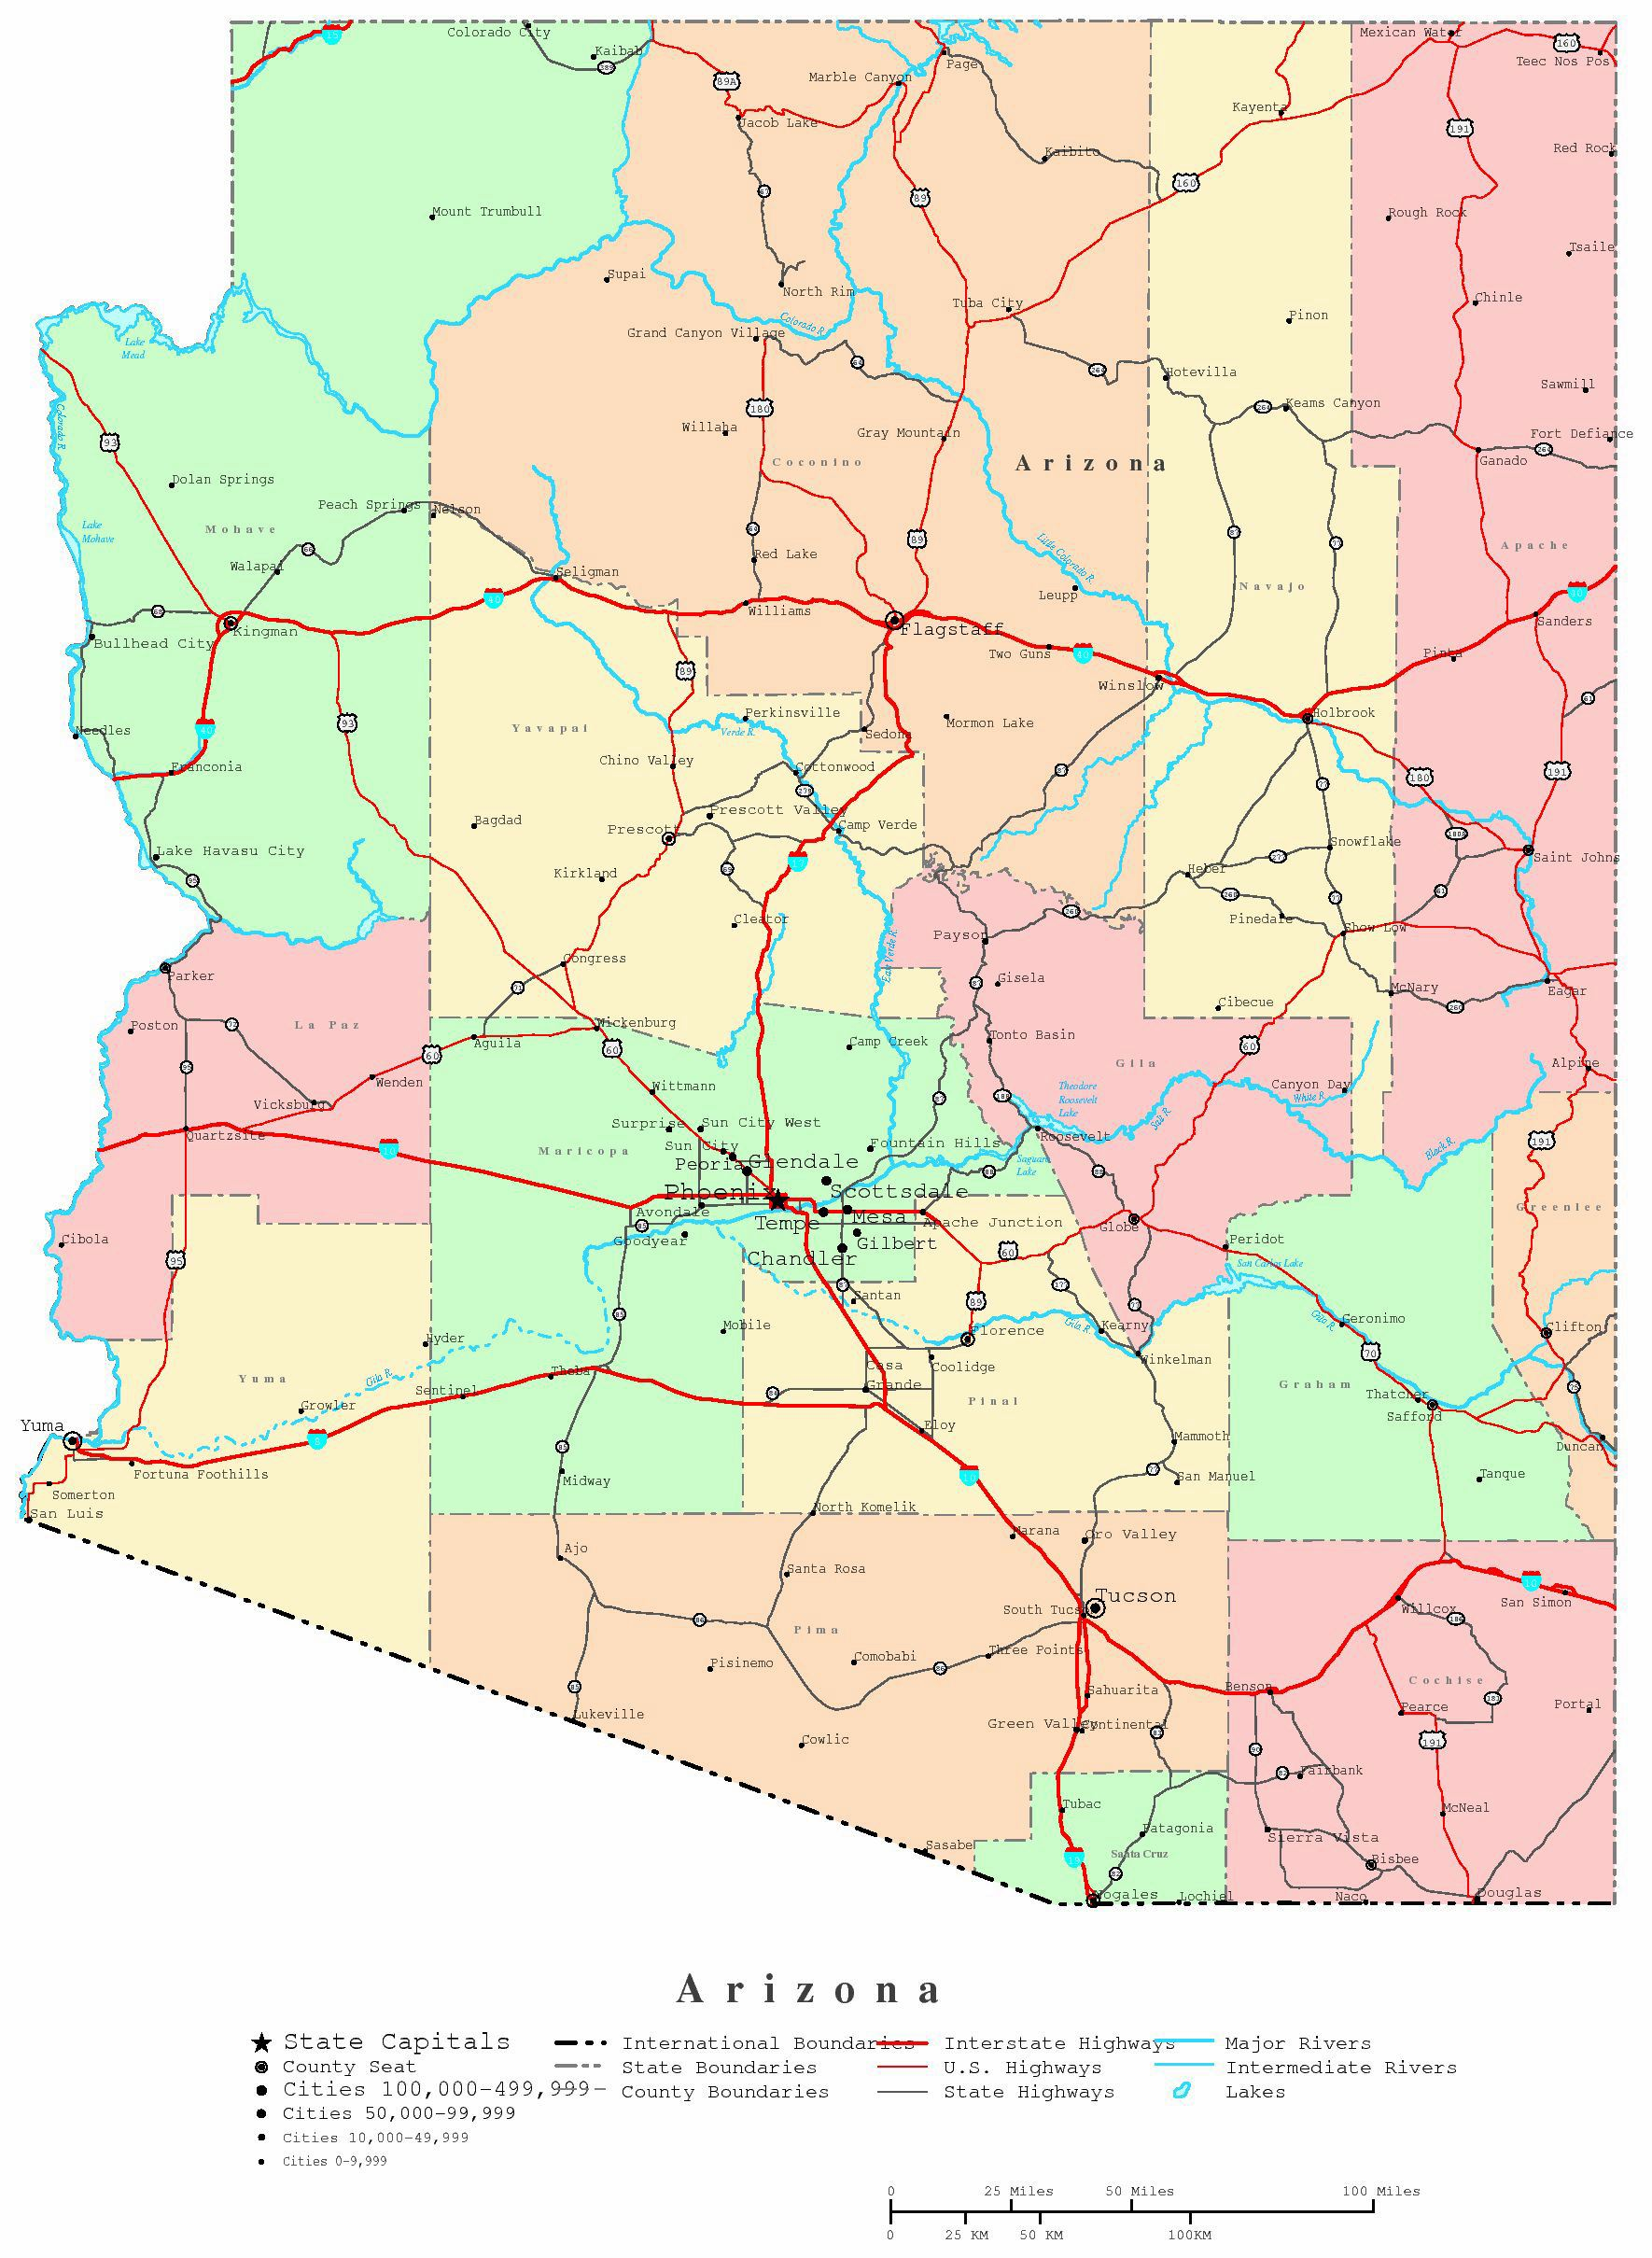 Large Arizona Maps for Free Download and Print | High Resolution